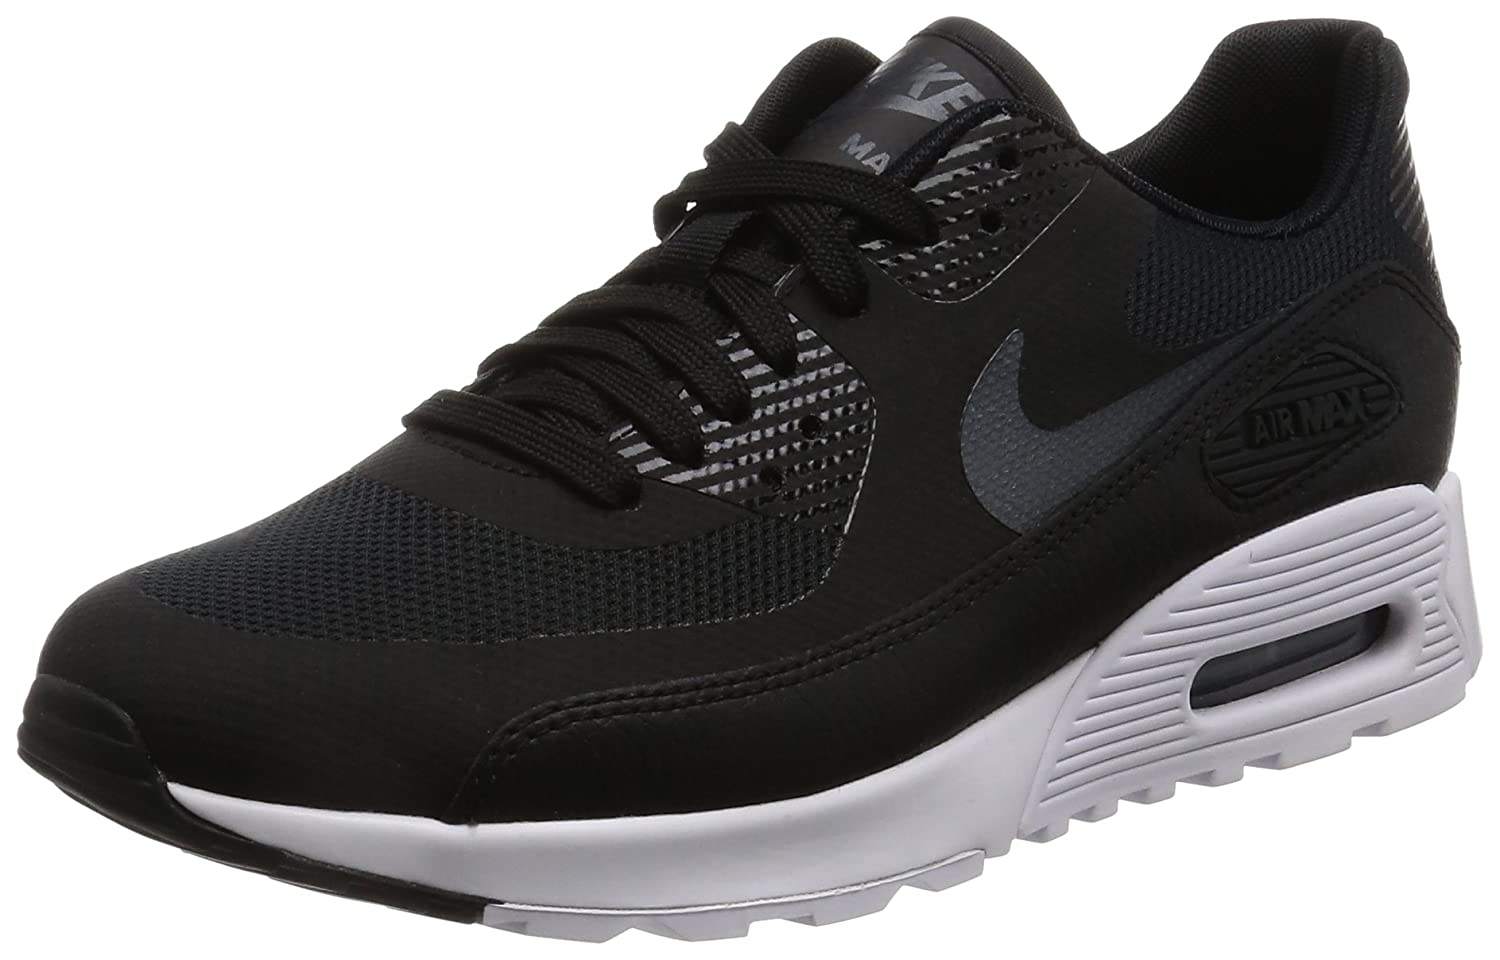 quality design 6a22a 33eb0 Amazon.com   Nike Women s Air Max 90 Ultra 2.0 Running Shoe   Road Running